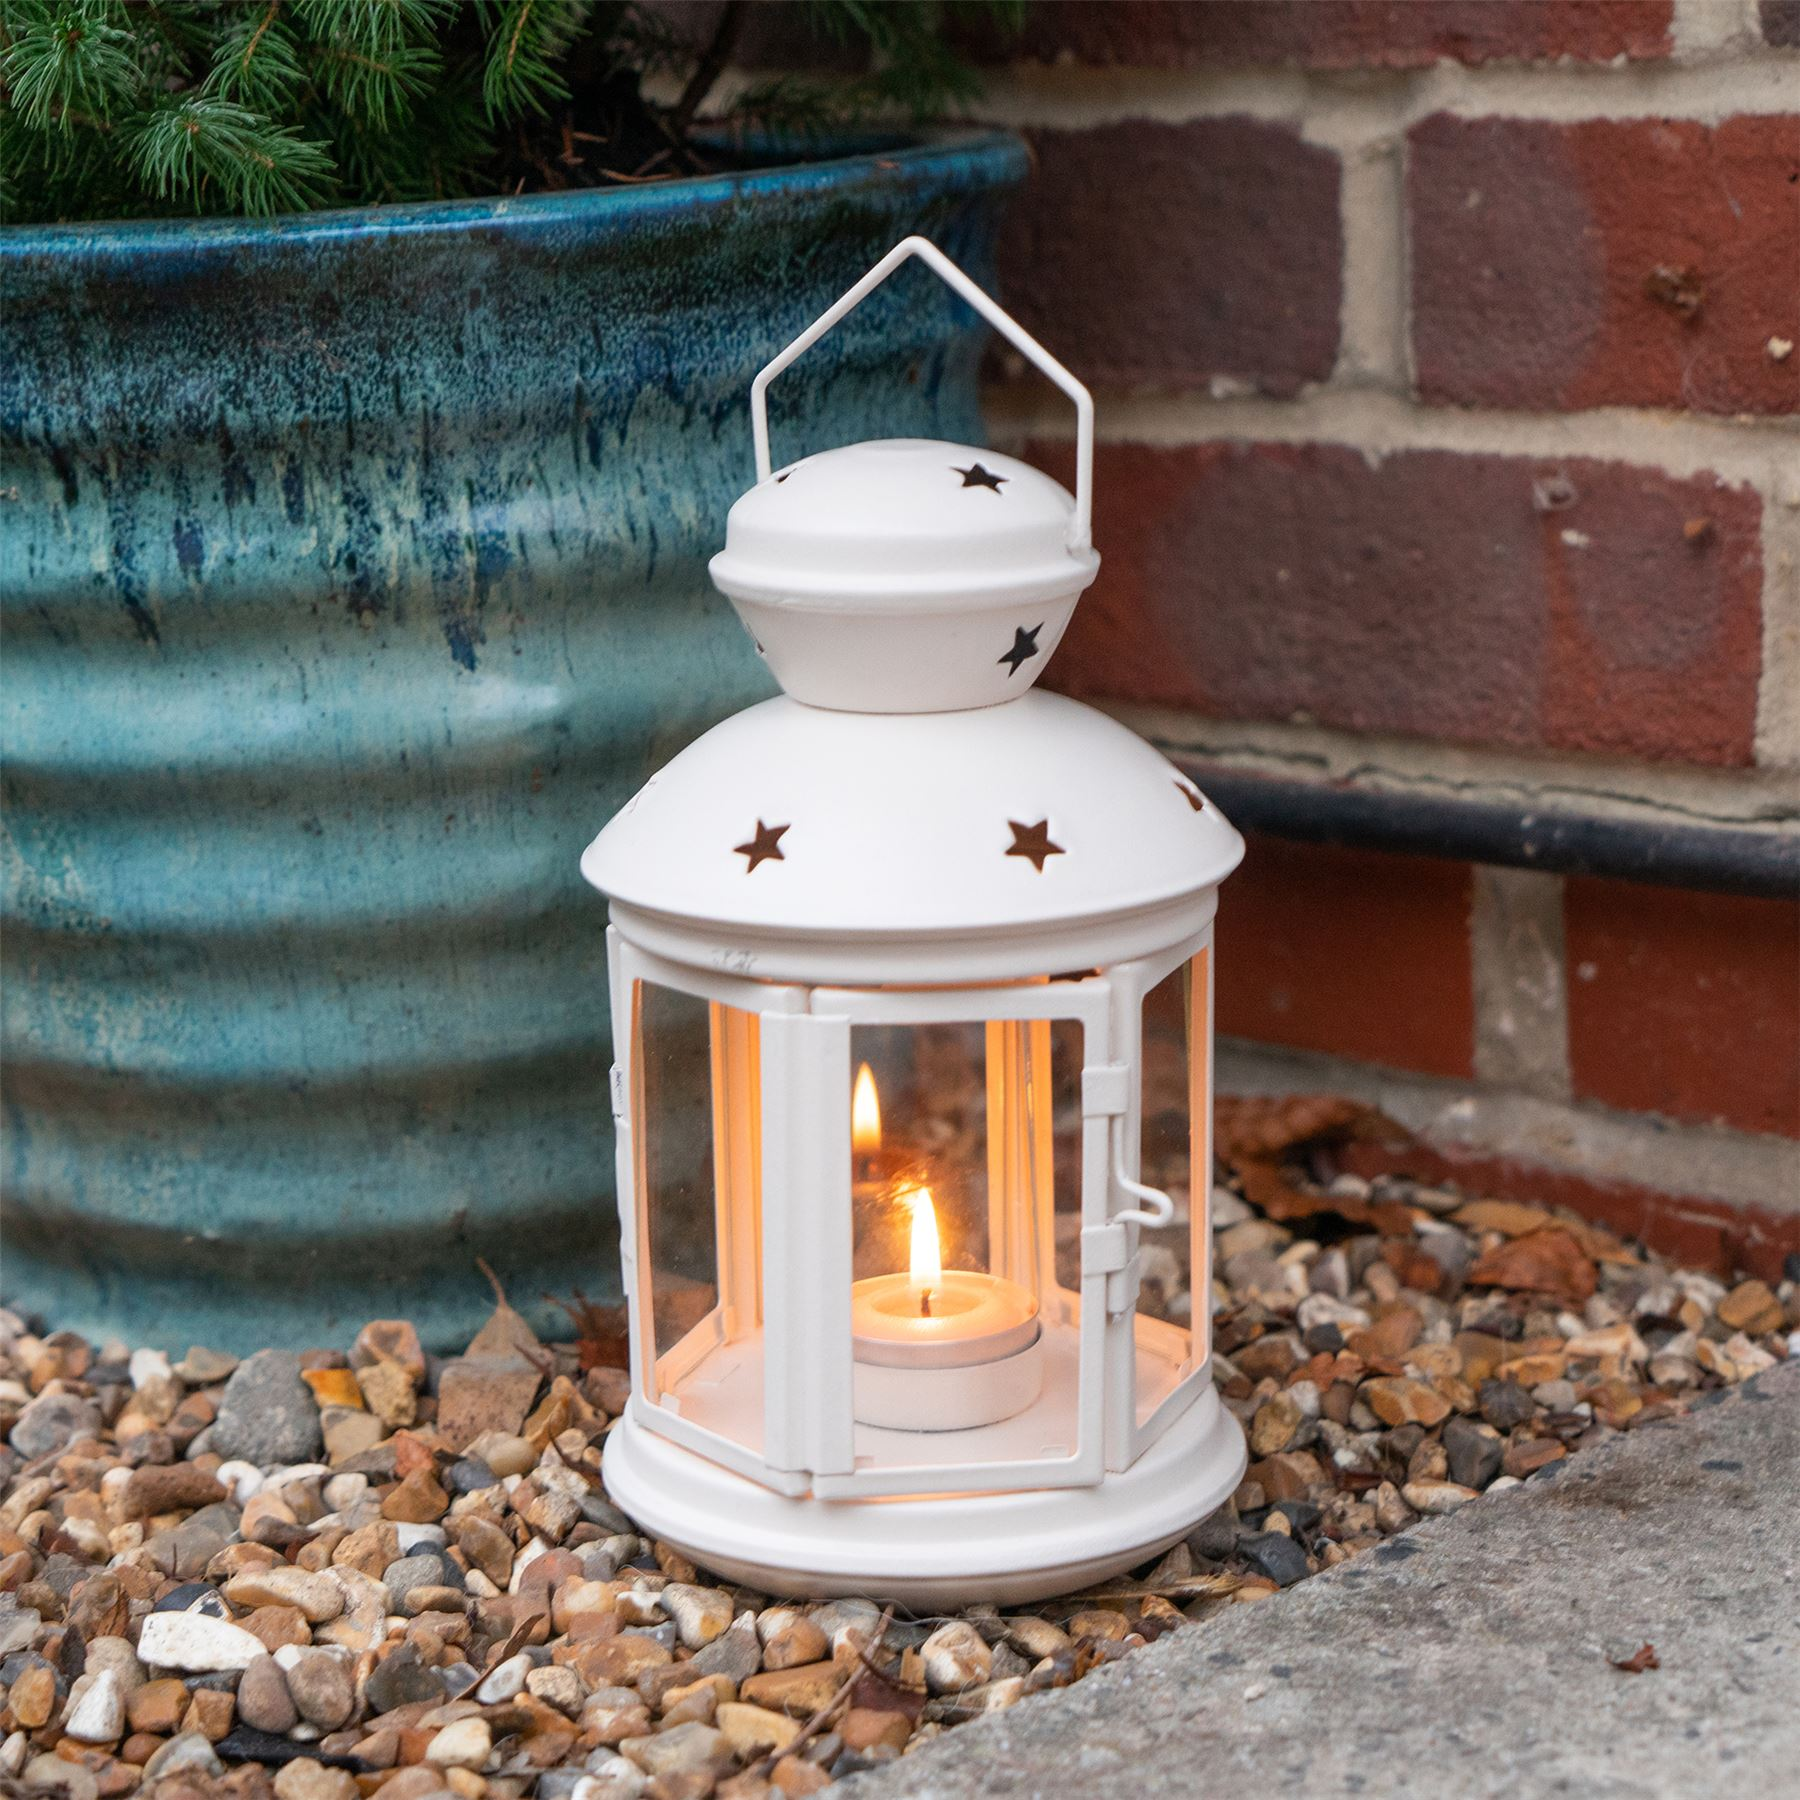 Metal-Candle-Lanterns-Tealight-Holders-Vintage-French-Moroccan-Style-20cm-x2 thumbnail 15